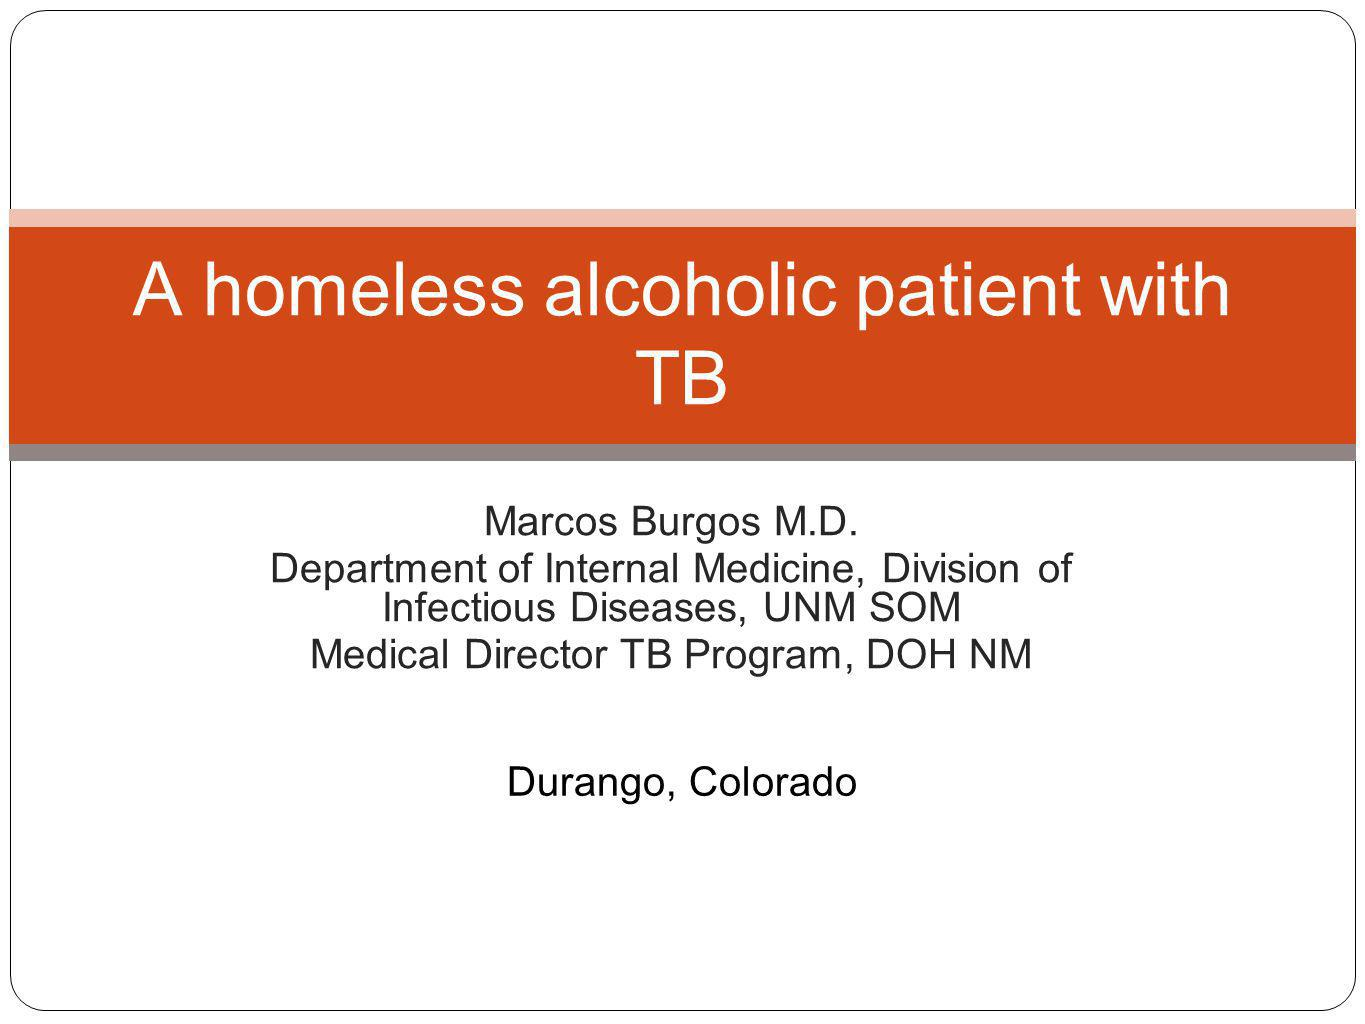 Marcos Burgos M.D. Department of Internal Medicine, Division of Infectious Diseases, UNM SOM Medical Director TB Program, DOH NM A homeless alcoholic